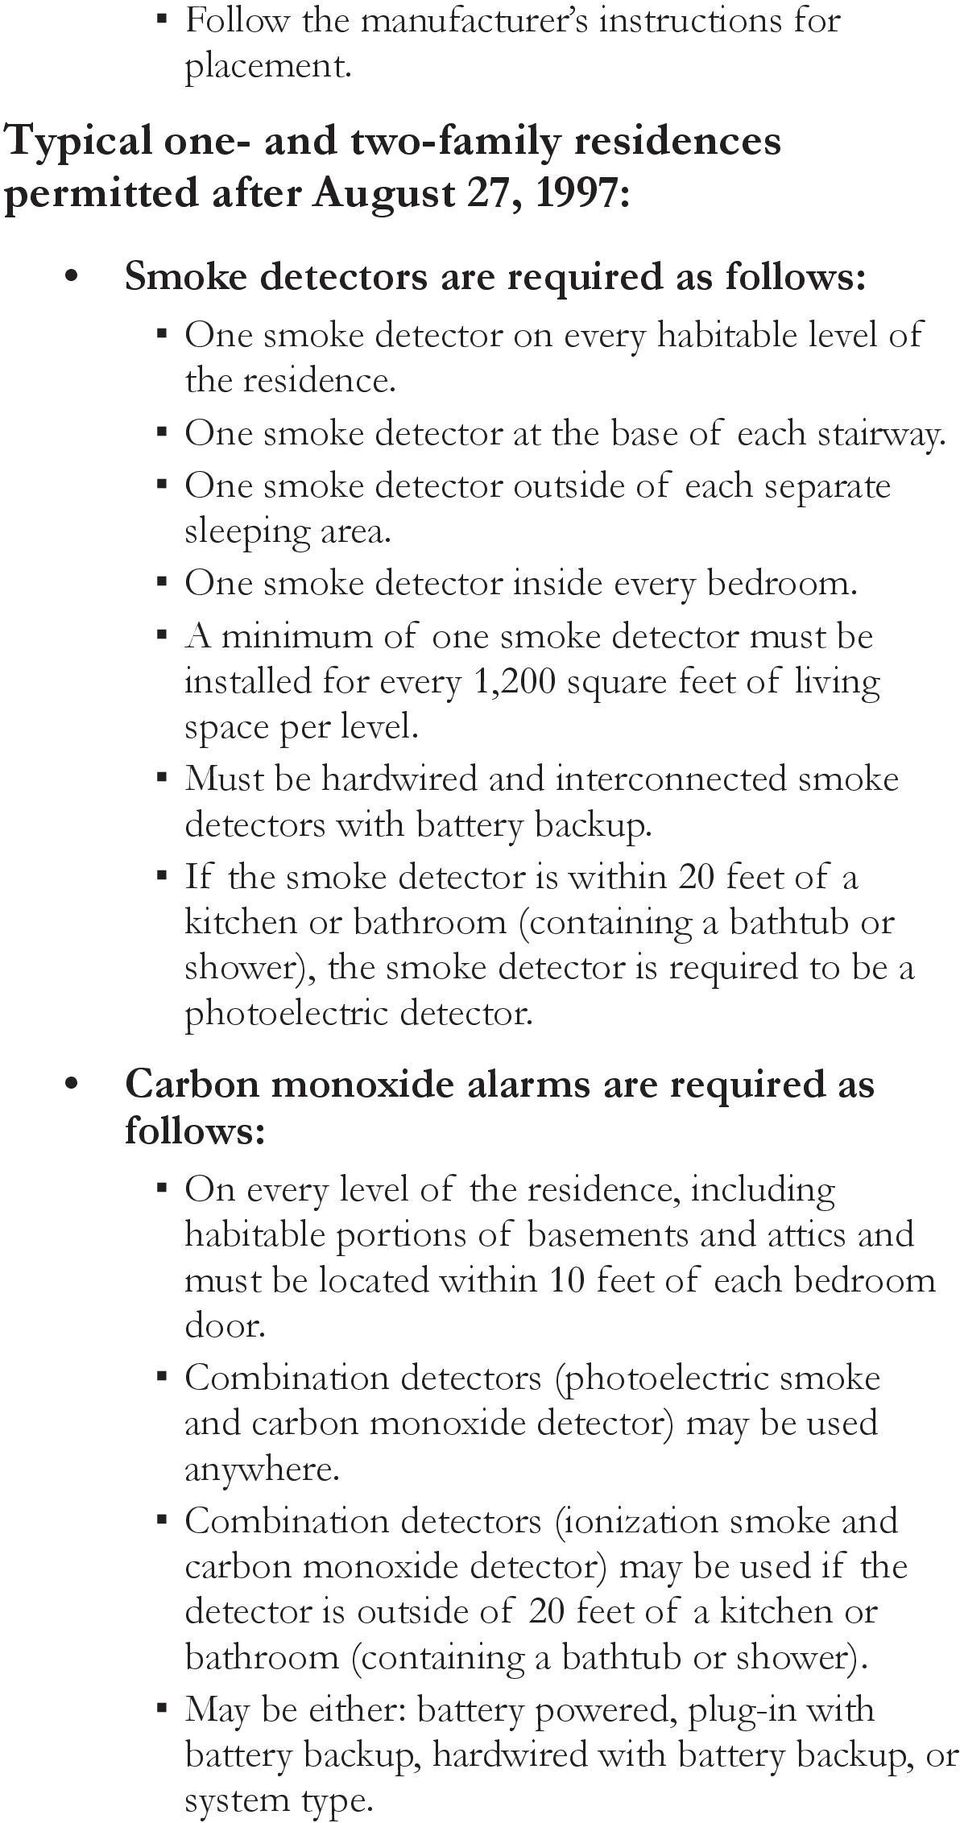 One smoke detector at the base of each stairway. One smoke detector outside of each separate sleeping area. One smoke detector inside every bedroom.